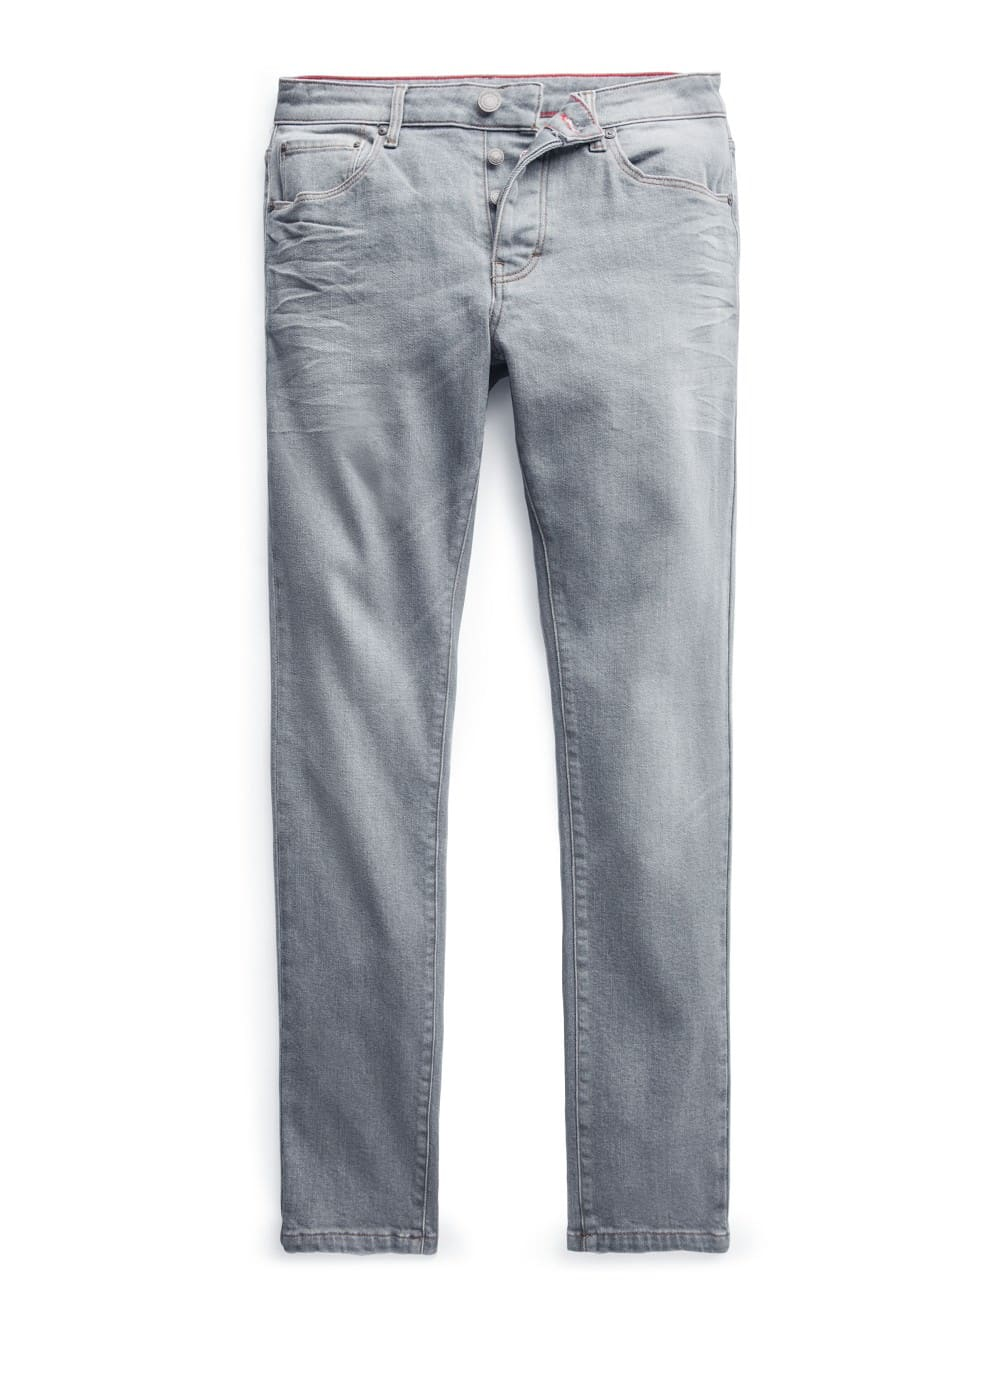 Jean Tim slim-fit gris